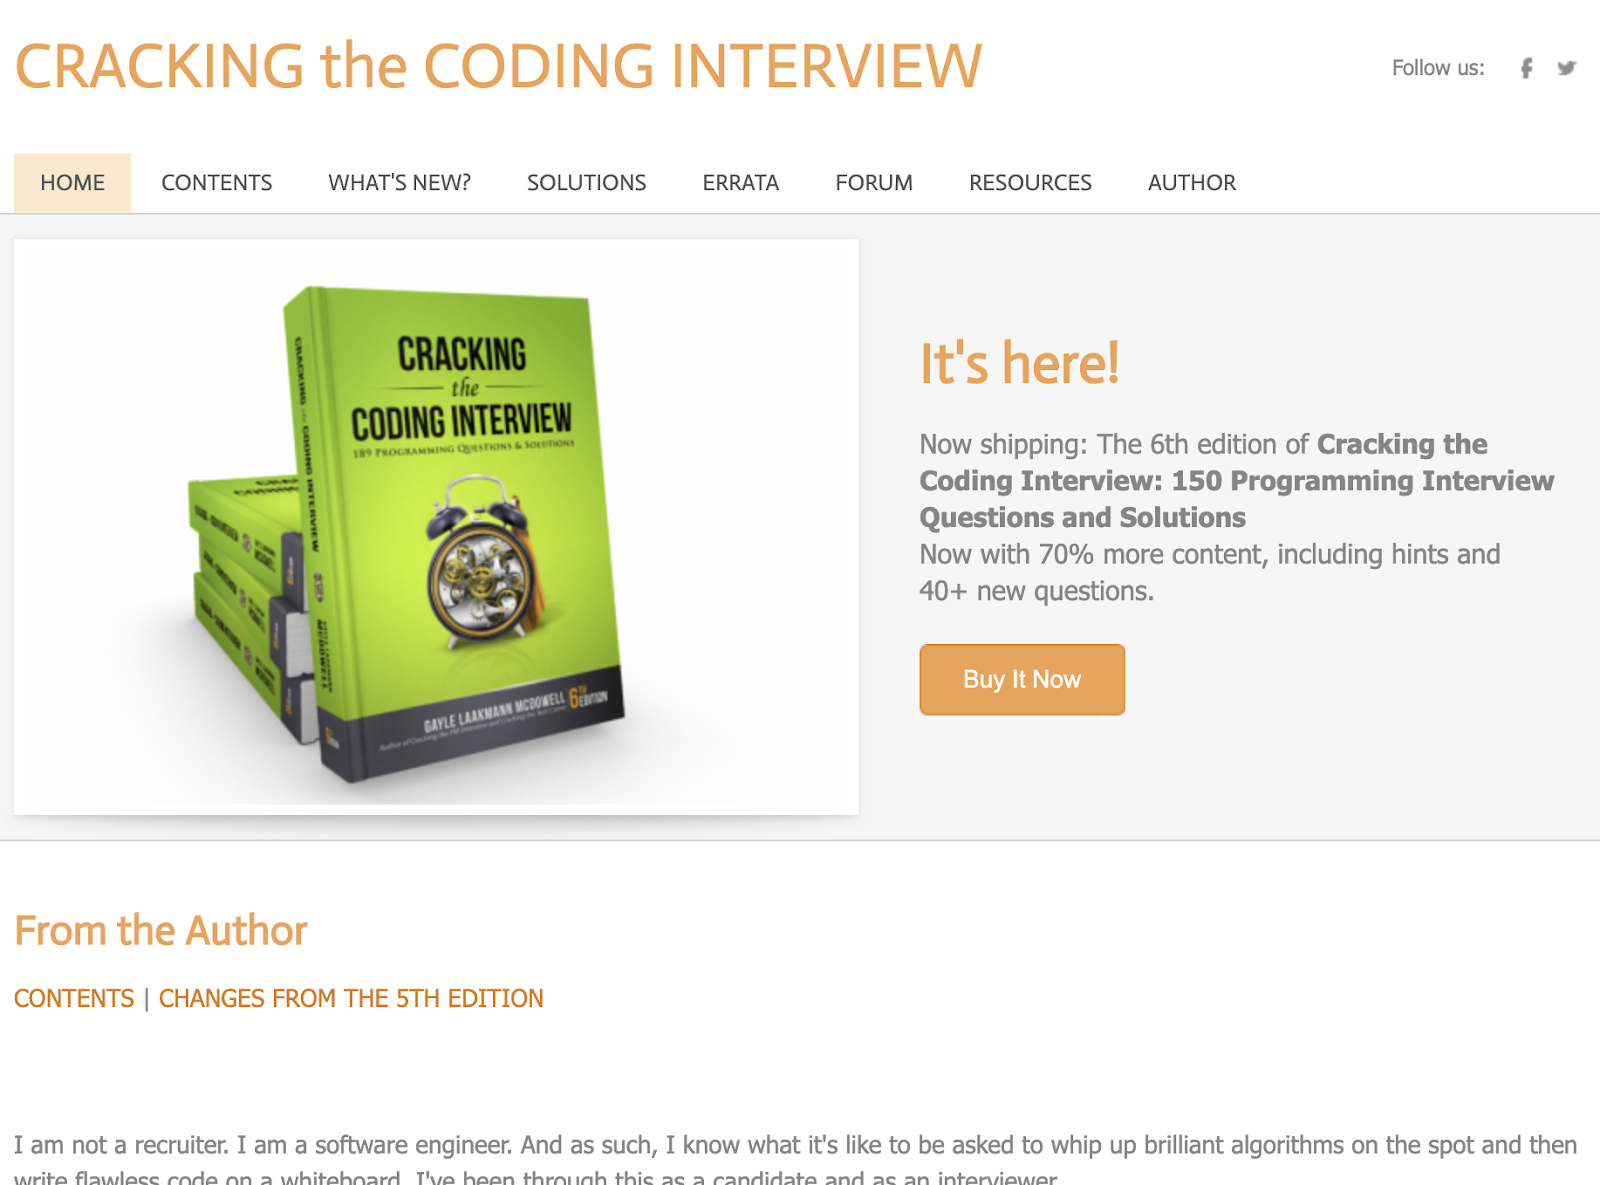 Cracking the Coding Interview home page